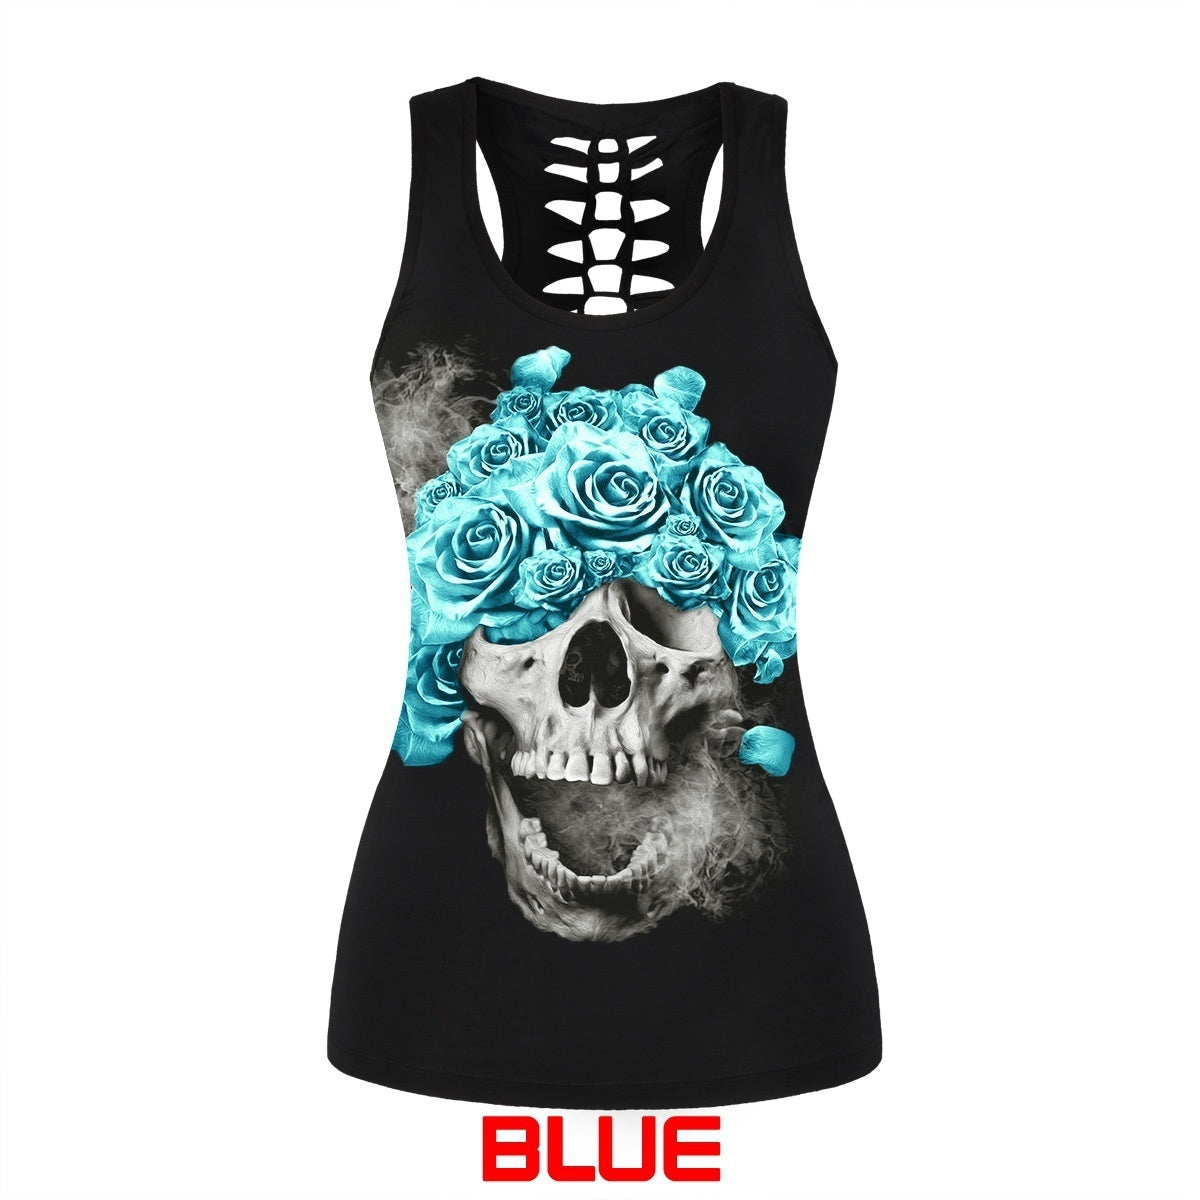 Women's Fashion Cotton Skull Print Hollow Out T-shirt Crew Neck Sleeveless Sexy Tank Top Plus Size